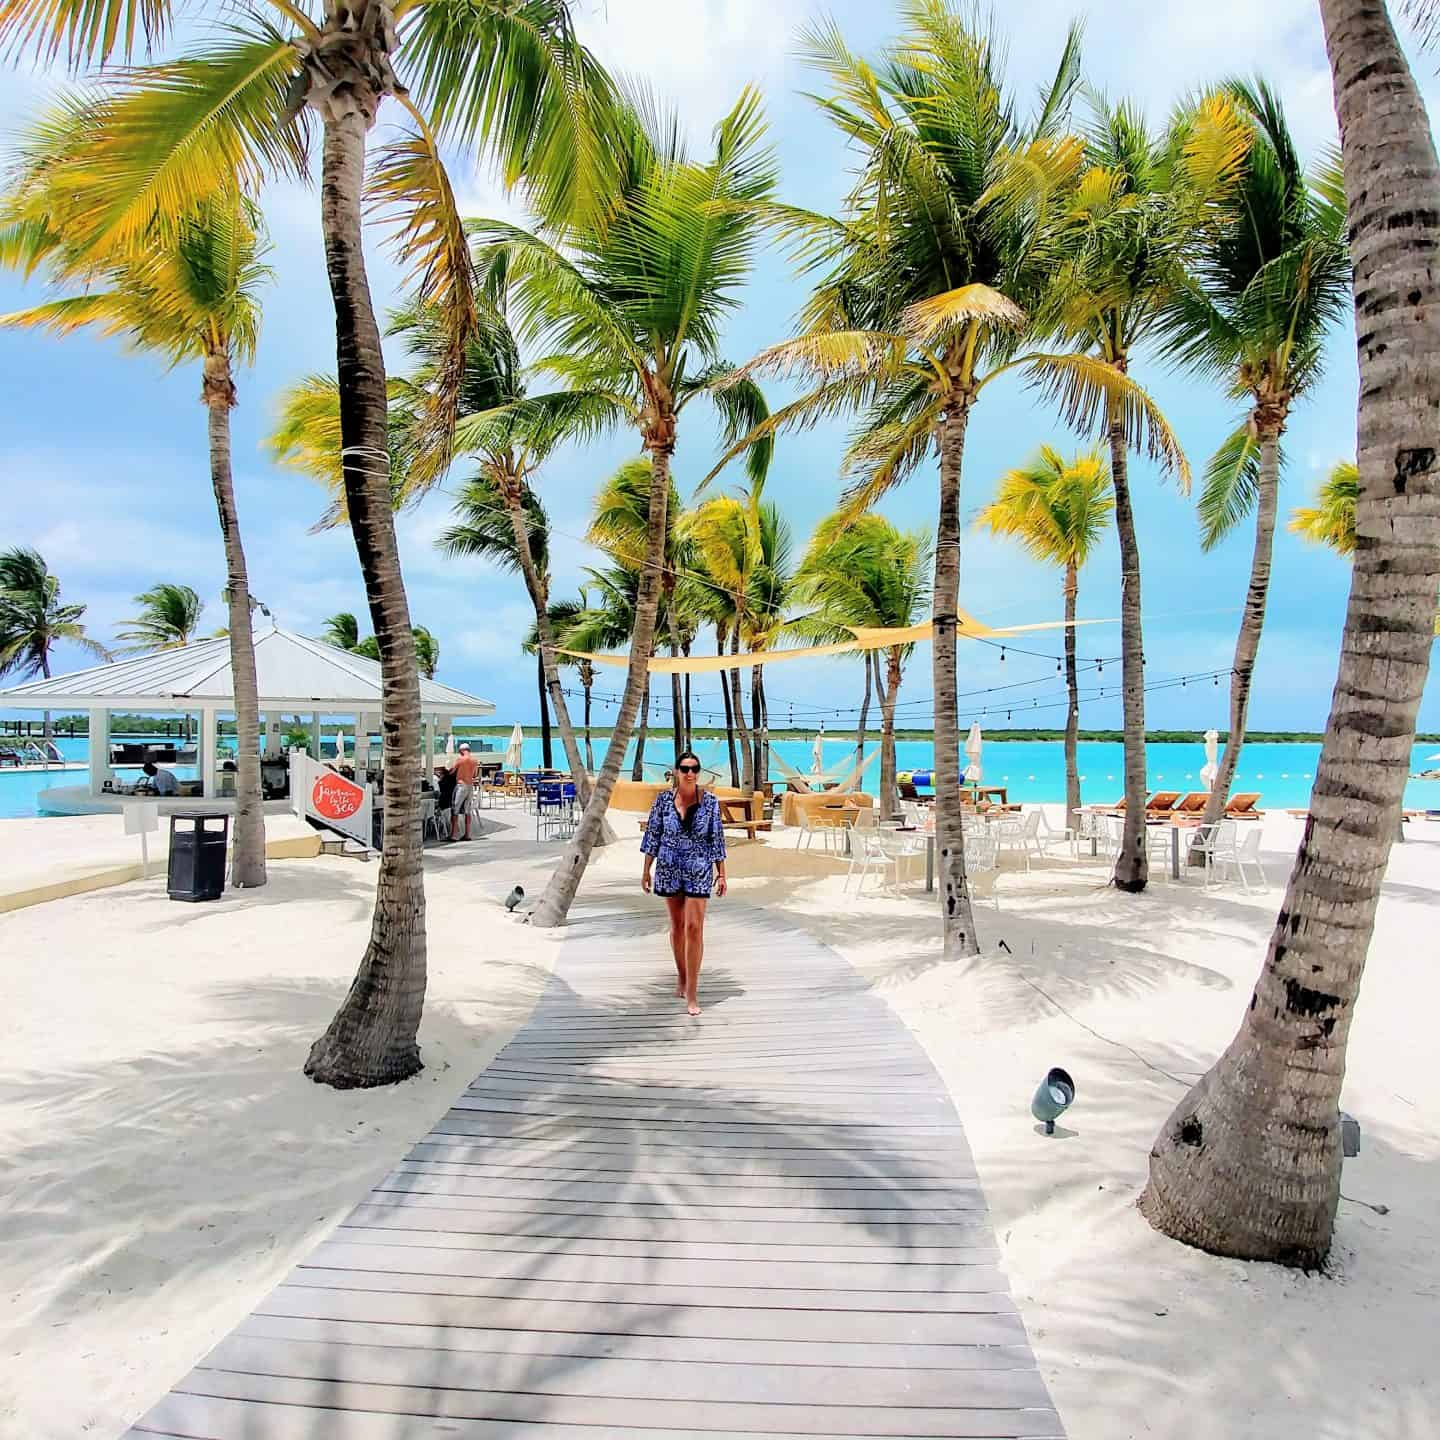 Blue Haven Resort:Upscale All-Inclusive Turks and Caicos